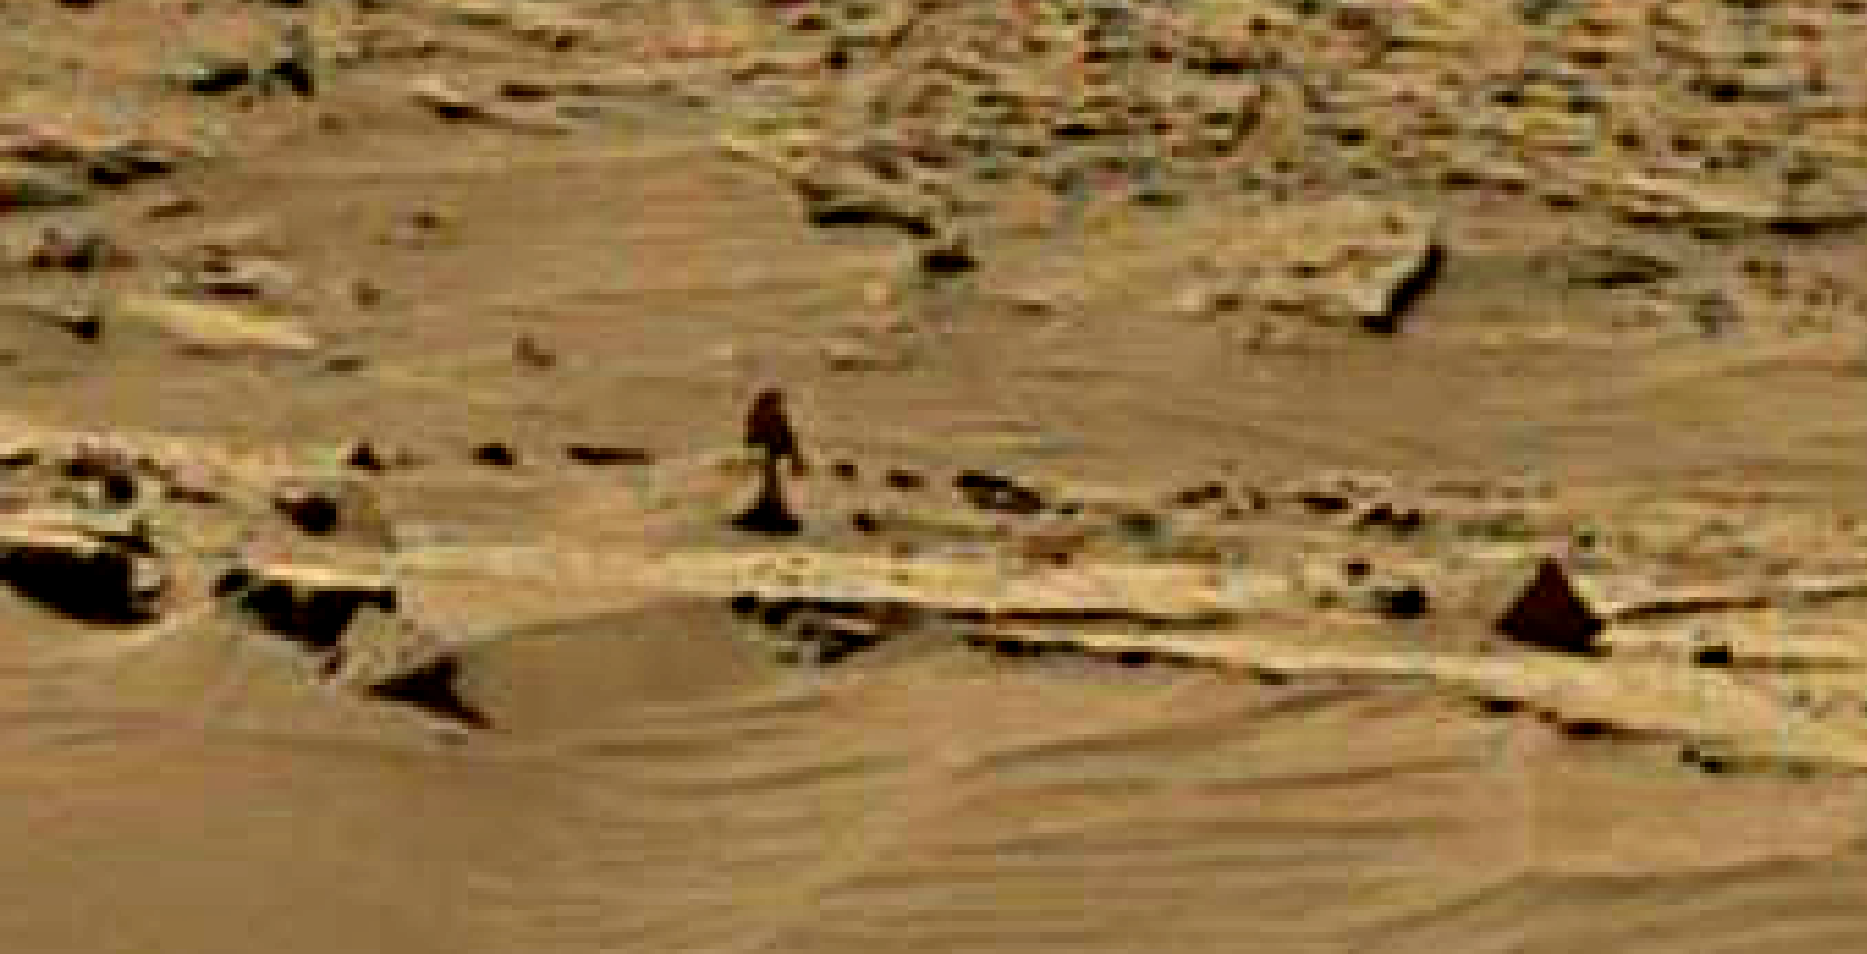 mars sol 1344 anomaly-artifacts 4 was life on mars